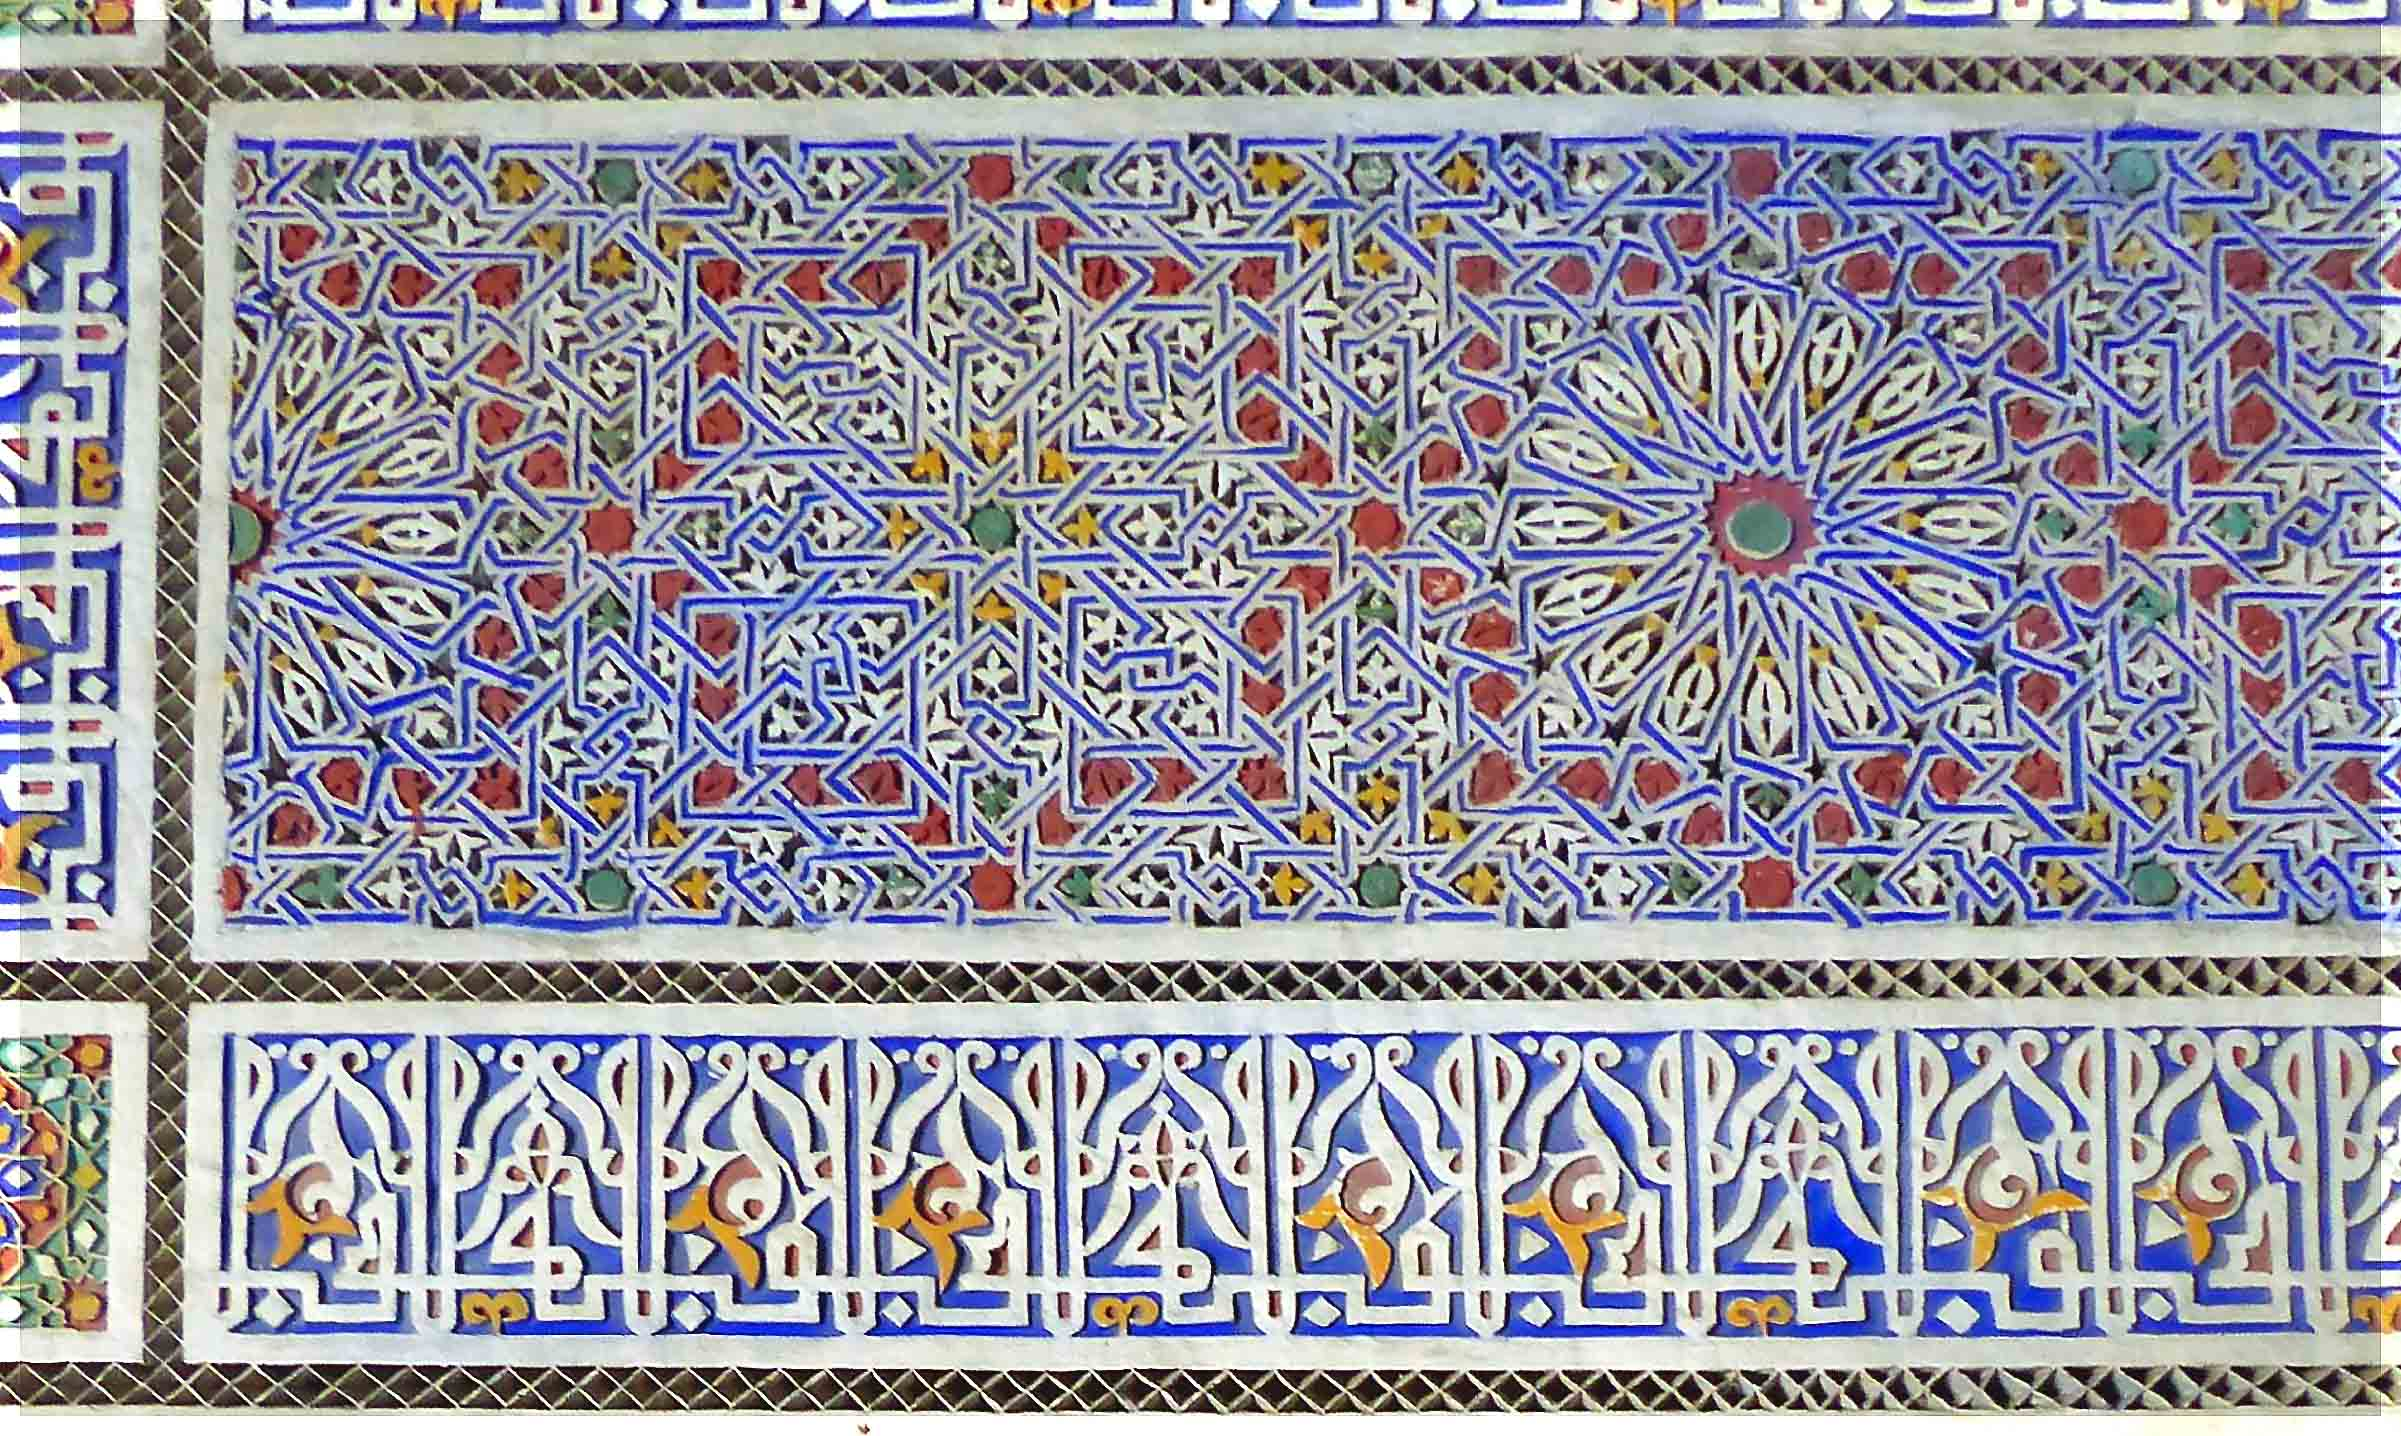 Decorative tiles in blue, red, green and white